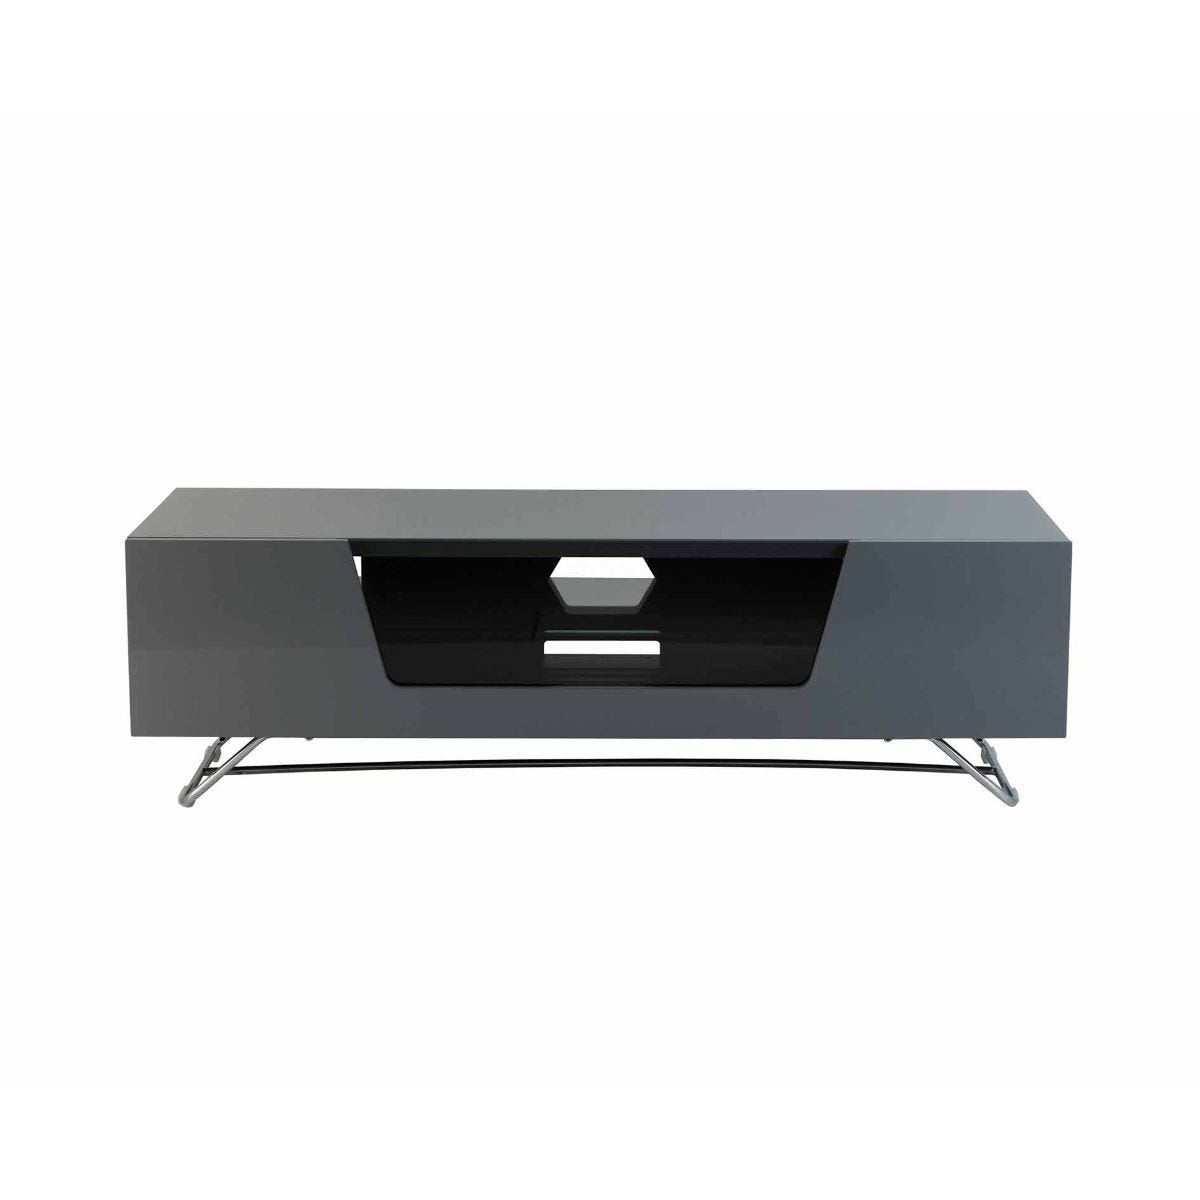 Alphason Chromium 1200 TV Cabinet, Grey